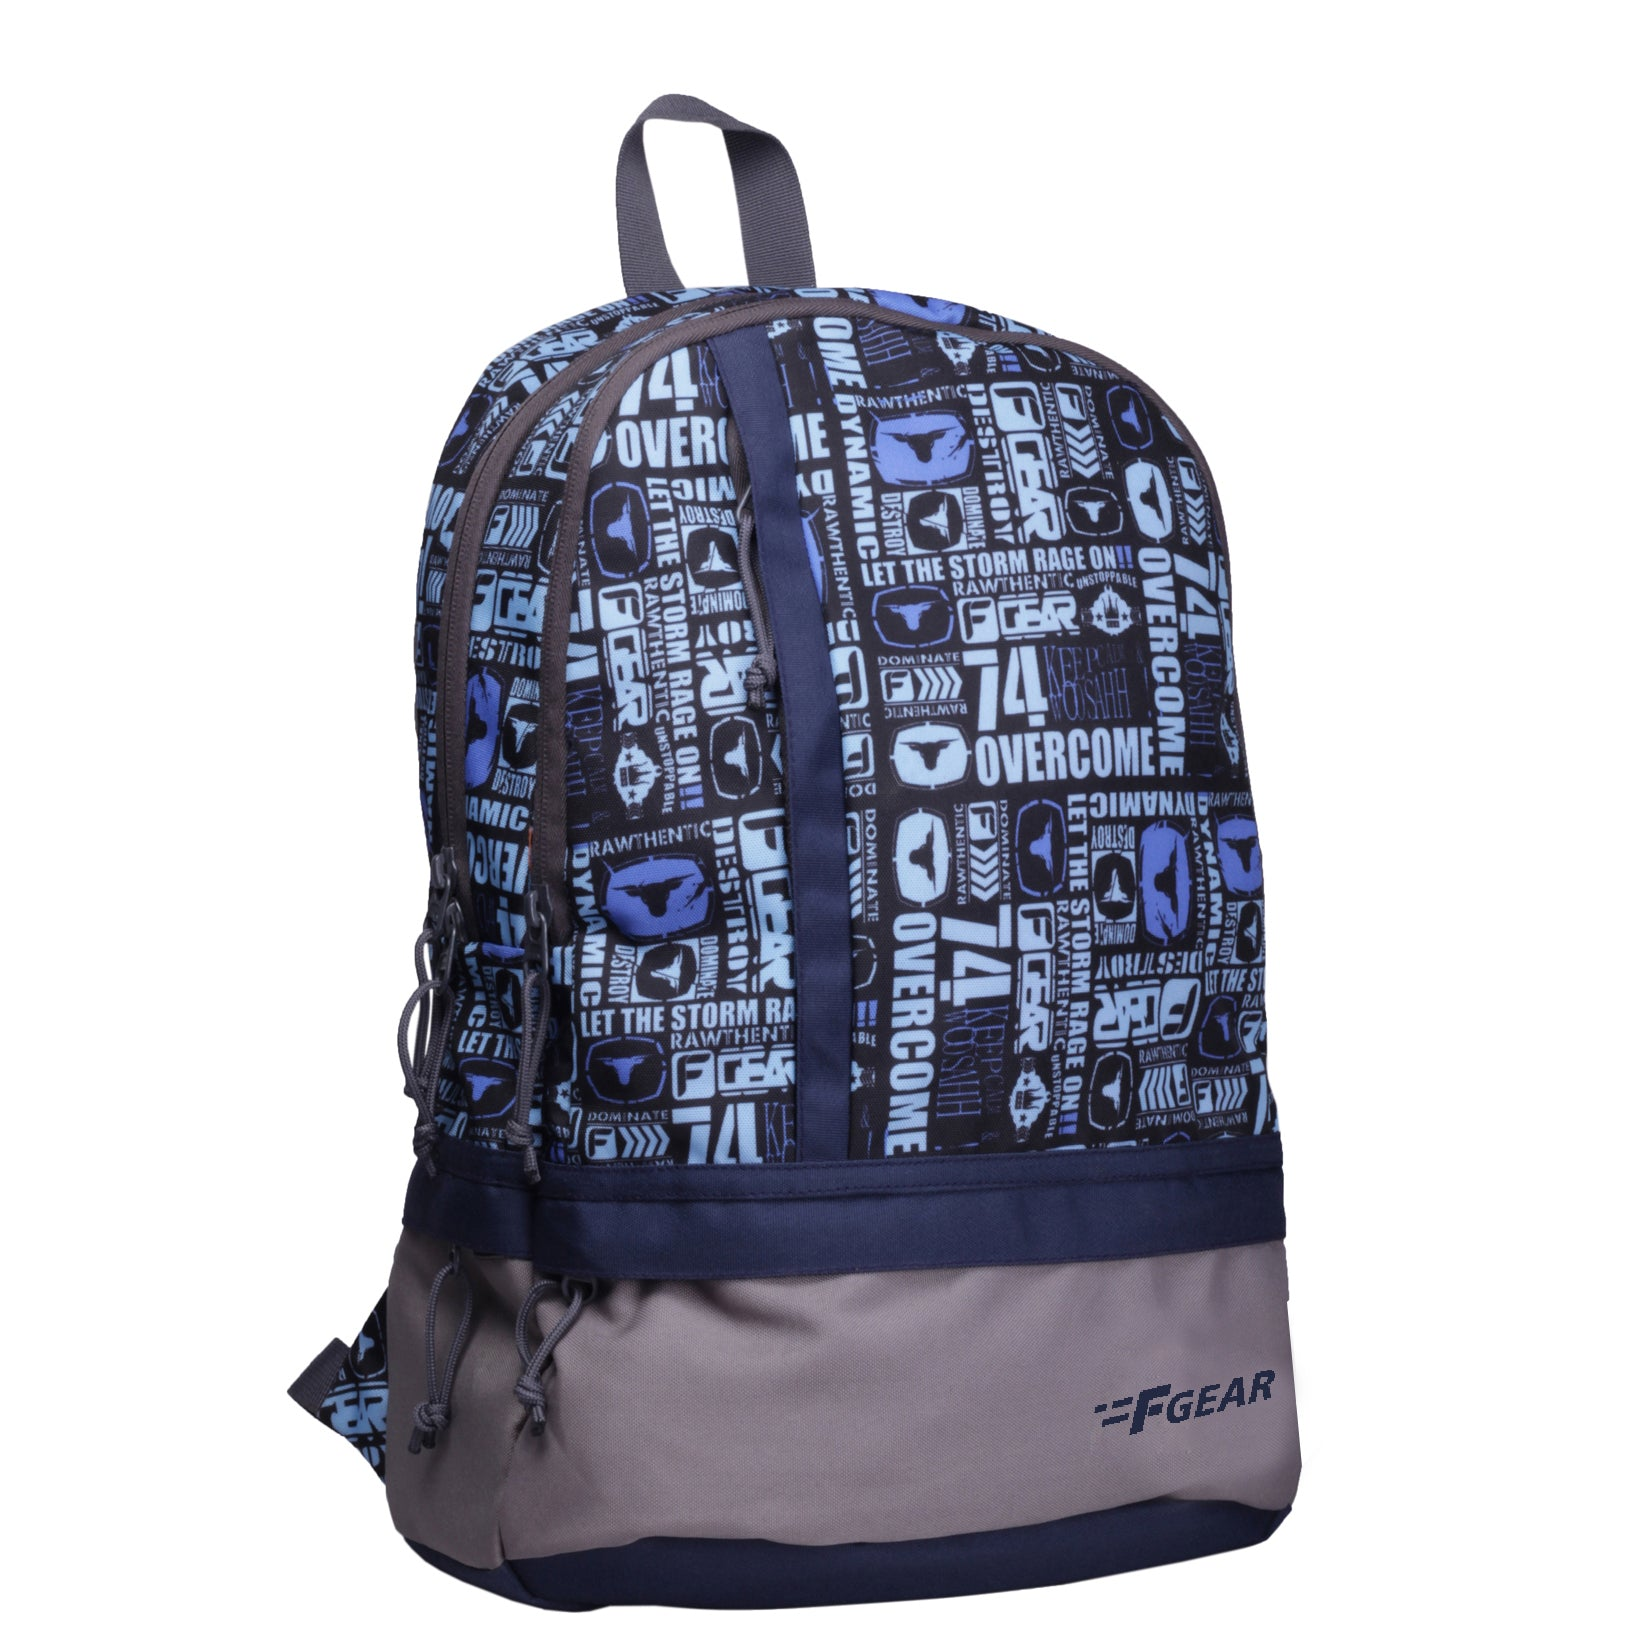 F Gear Burner P11 19 Ltrs Blue Casual Backpack (2437)